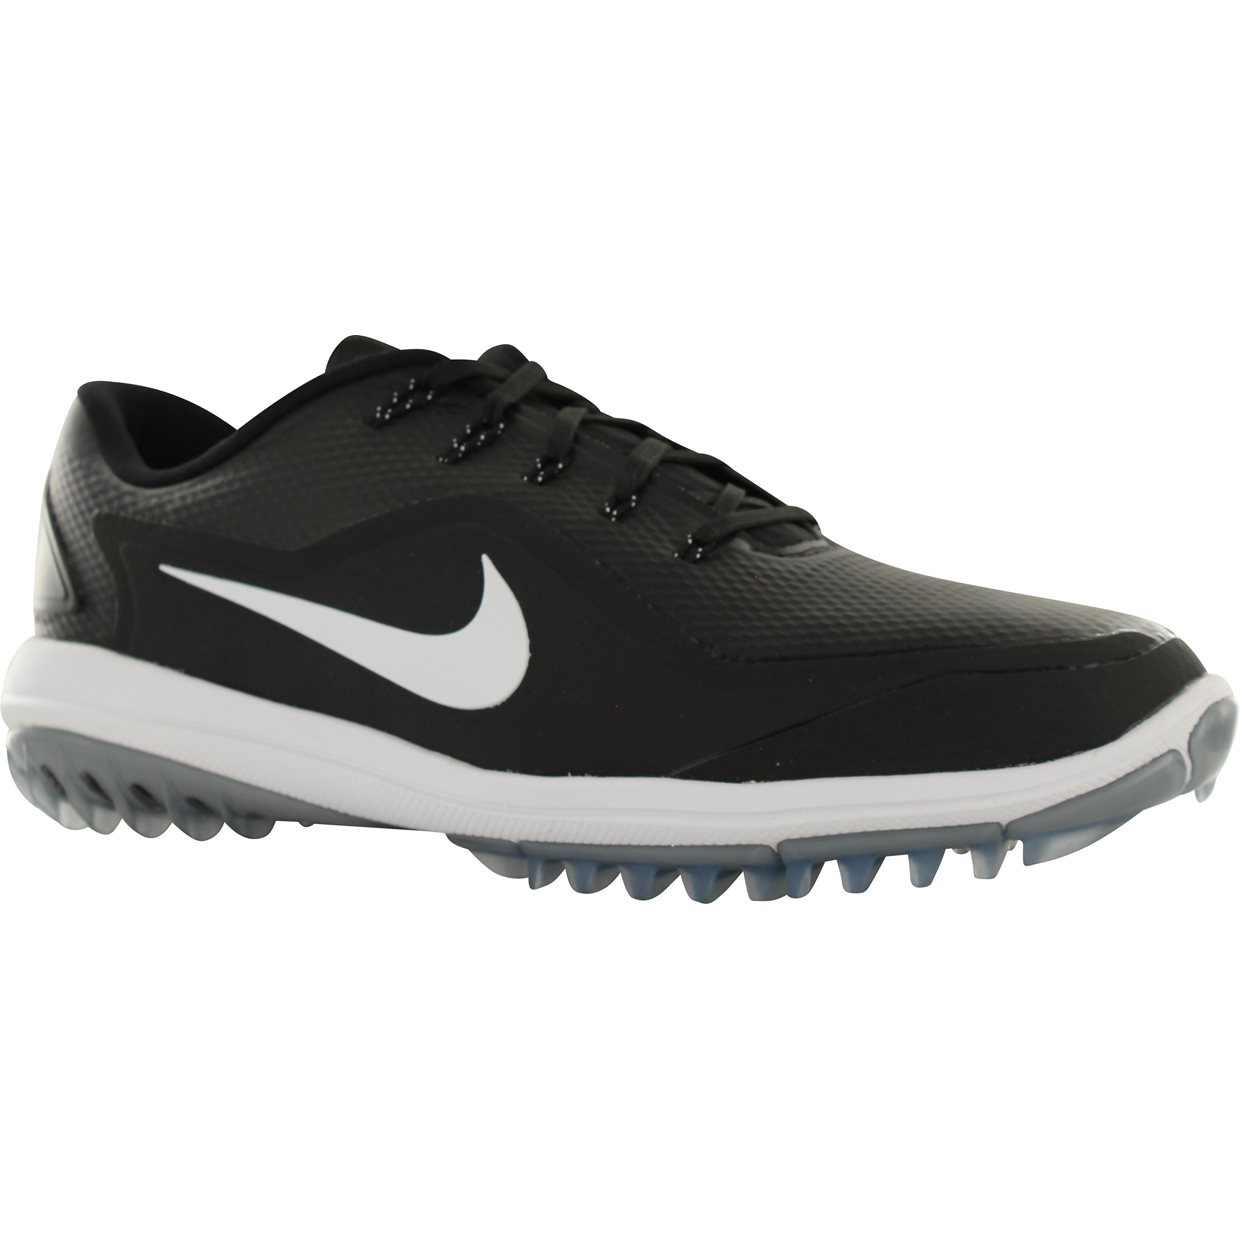 3d102877c68 Nike Lunar Control Vapor 2 Spikeless Shoes. Drag 360 Left or Right to View.  Alternate Product Image View 1 ...